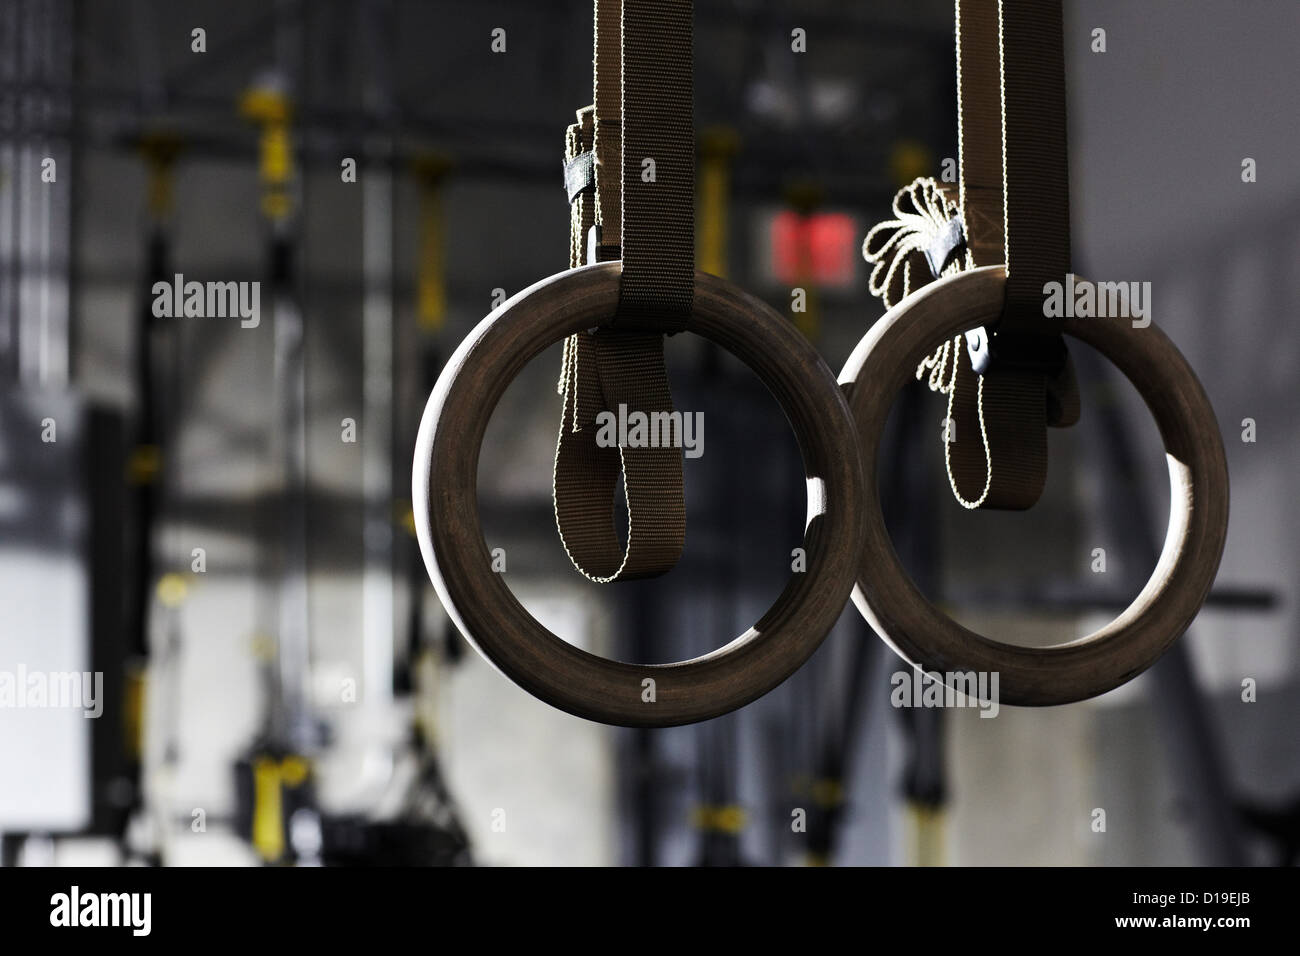 Gymnastic rings in gym - Stock Image